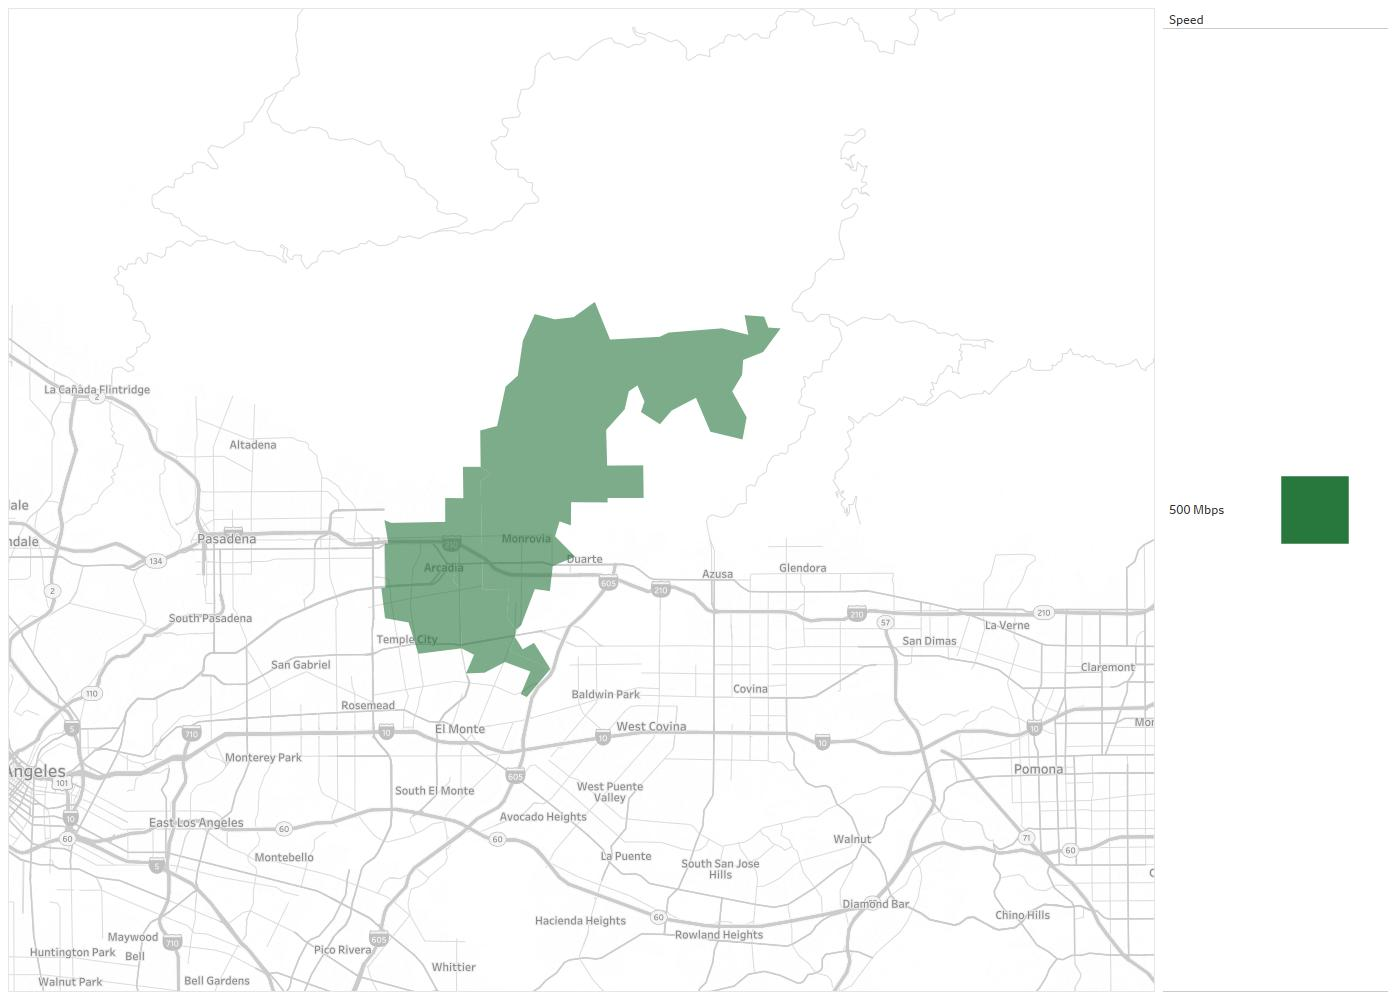 Giggle Fiber Availability Areas Coverage Map Decision Data